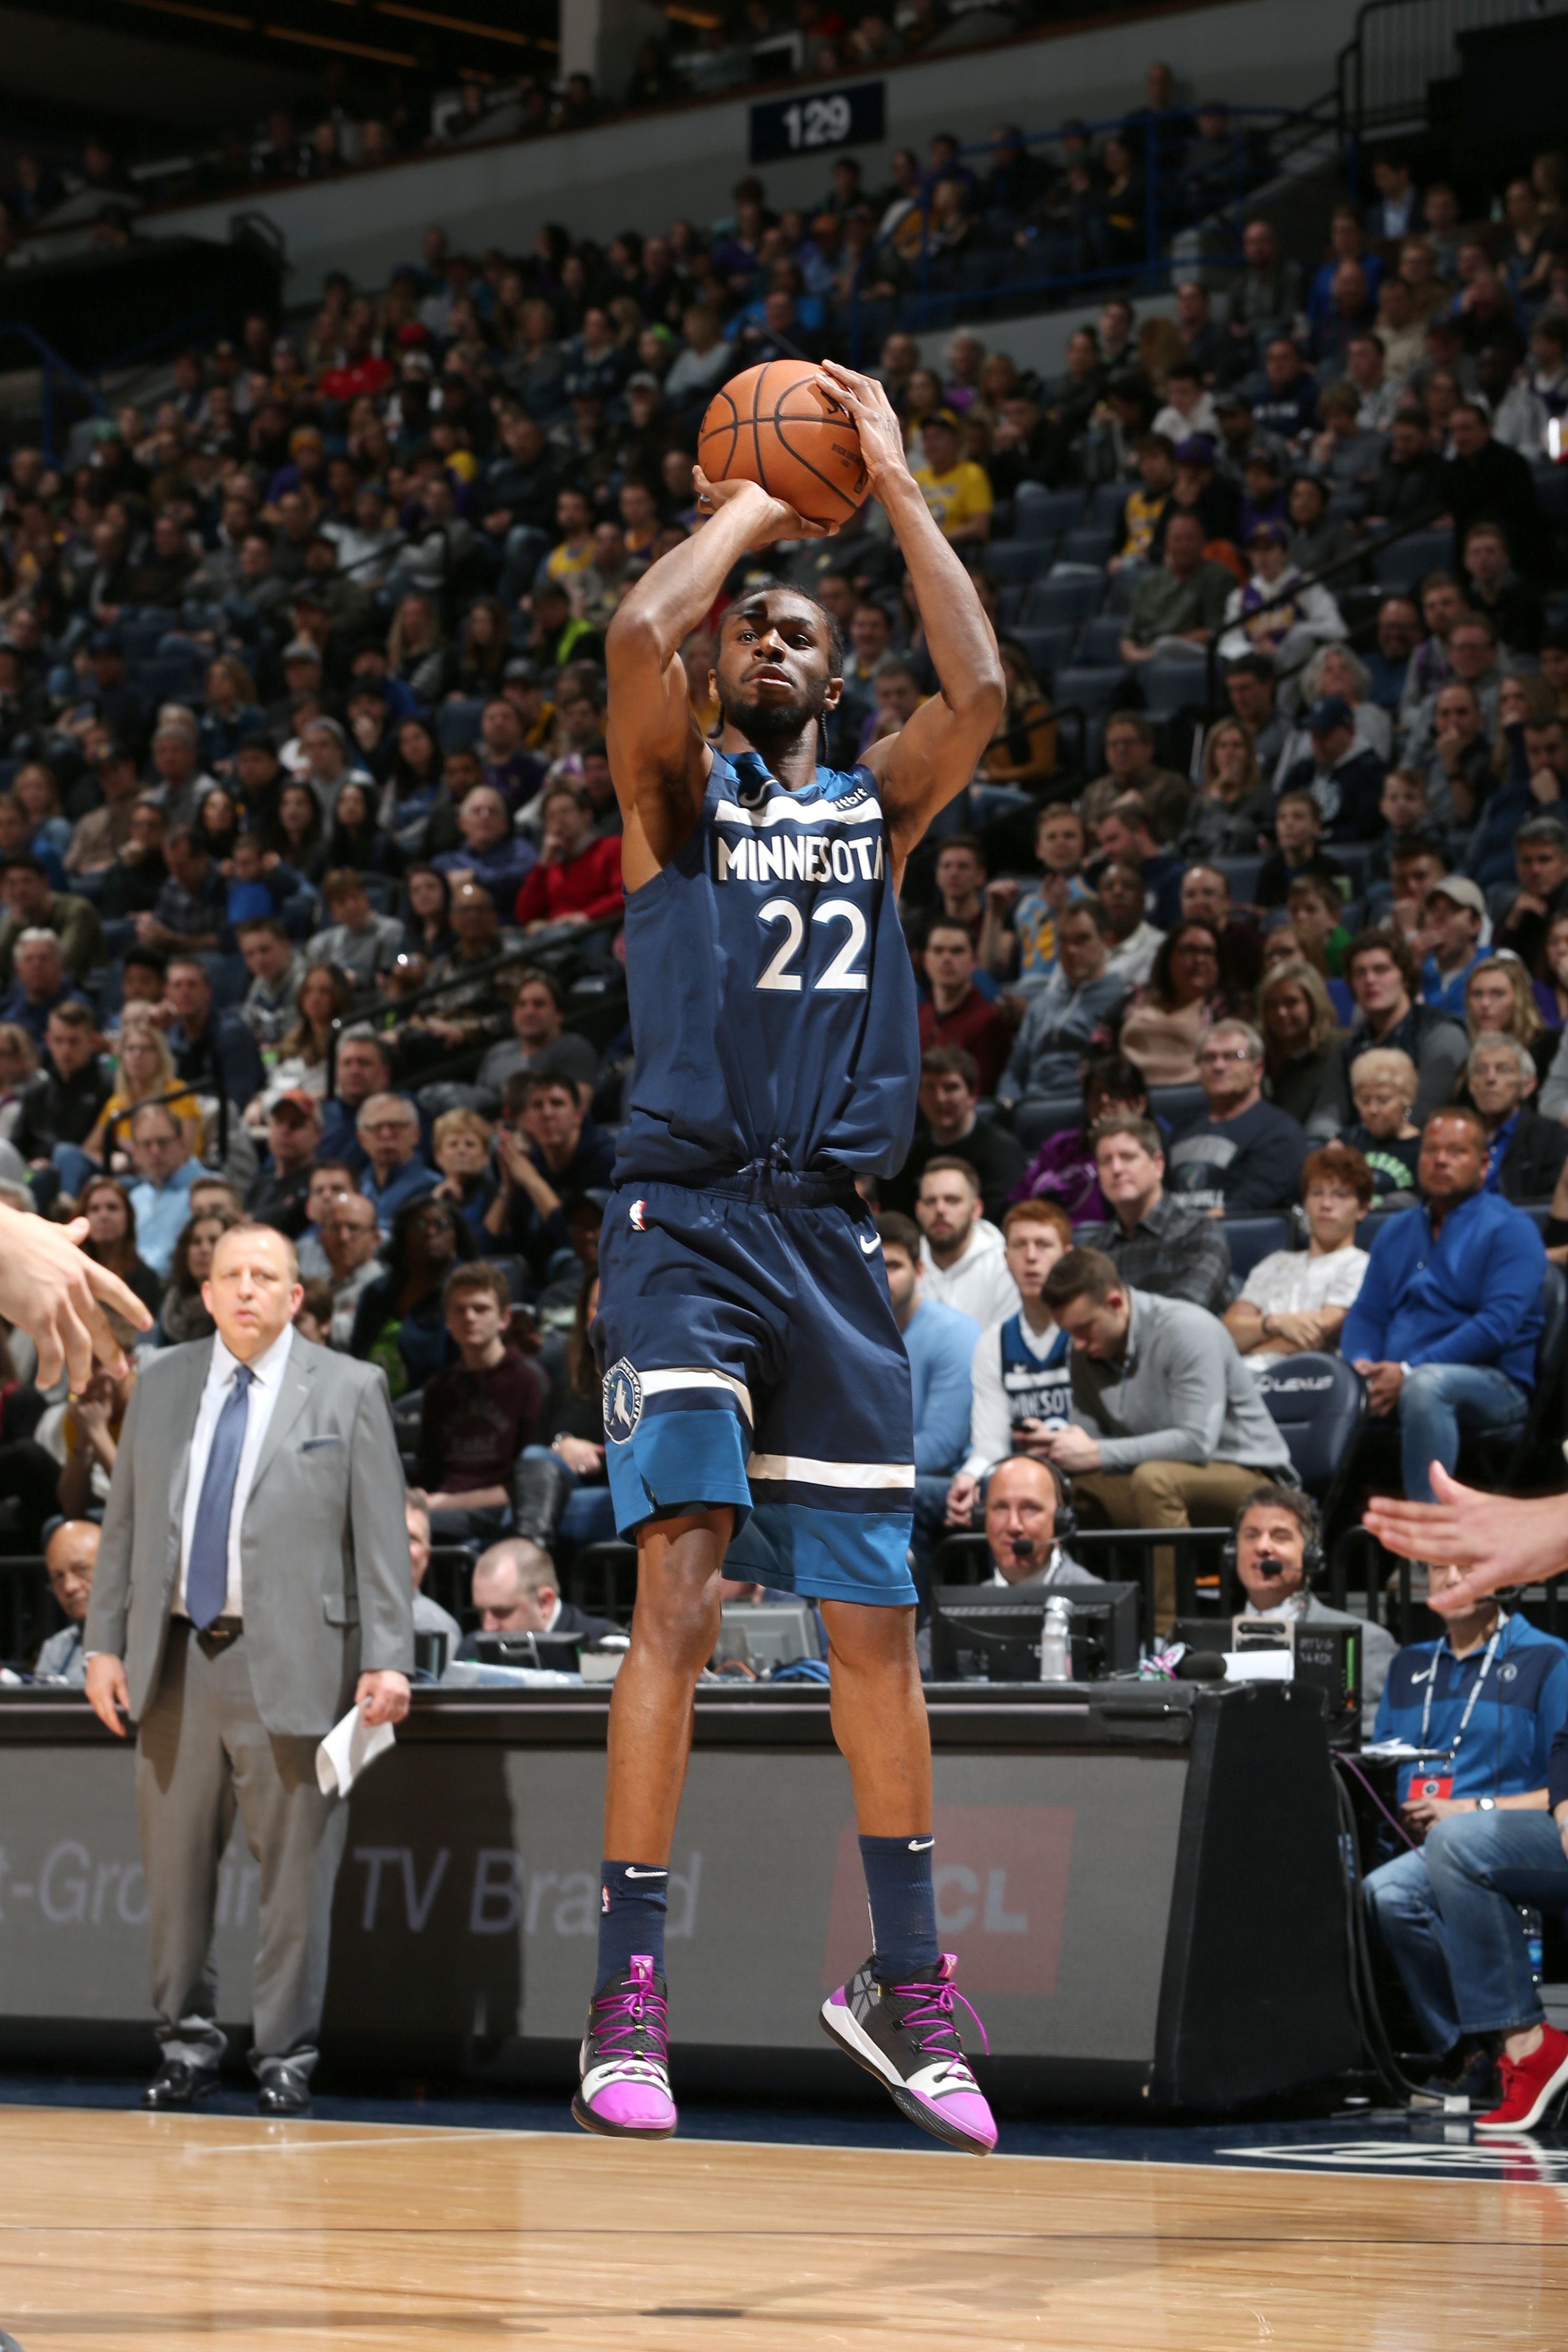 Minnesota Wolves' Andrew Wiggins Appears To Call Player 'Gay' In